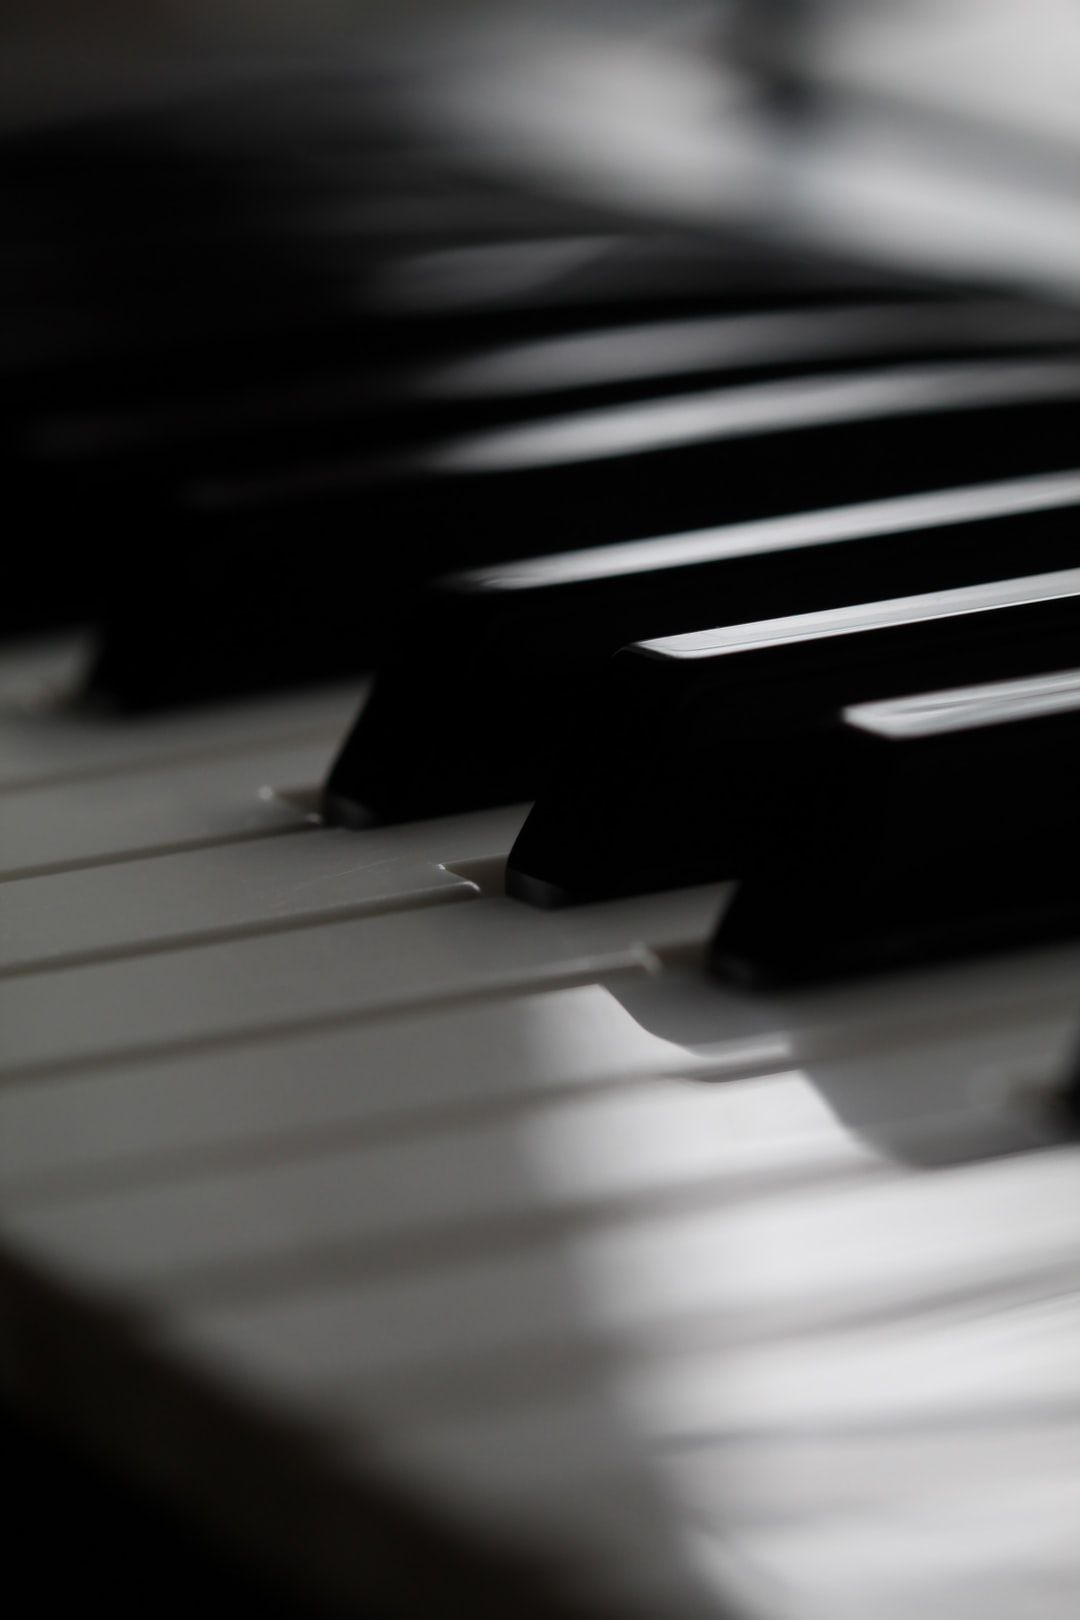 Download This Photo By Anne Nygard On Unsplash Dark Black Wallpaper Piano Free Iphone Wallpaper